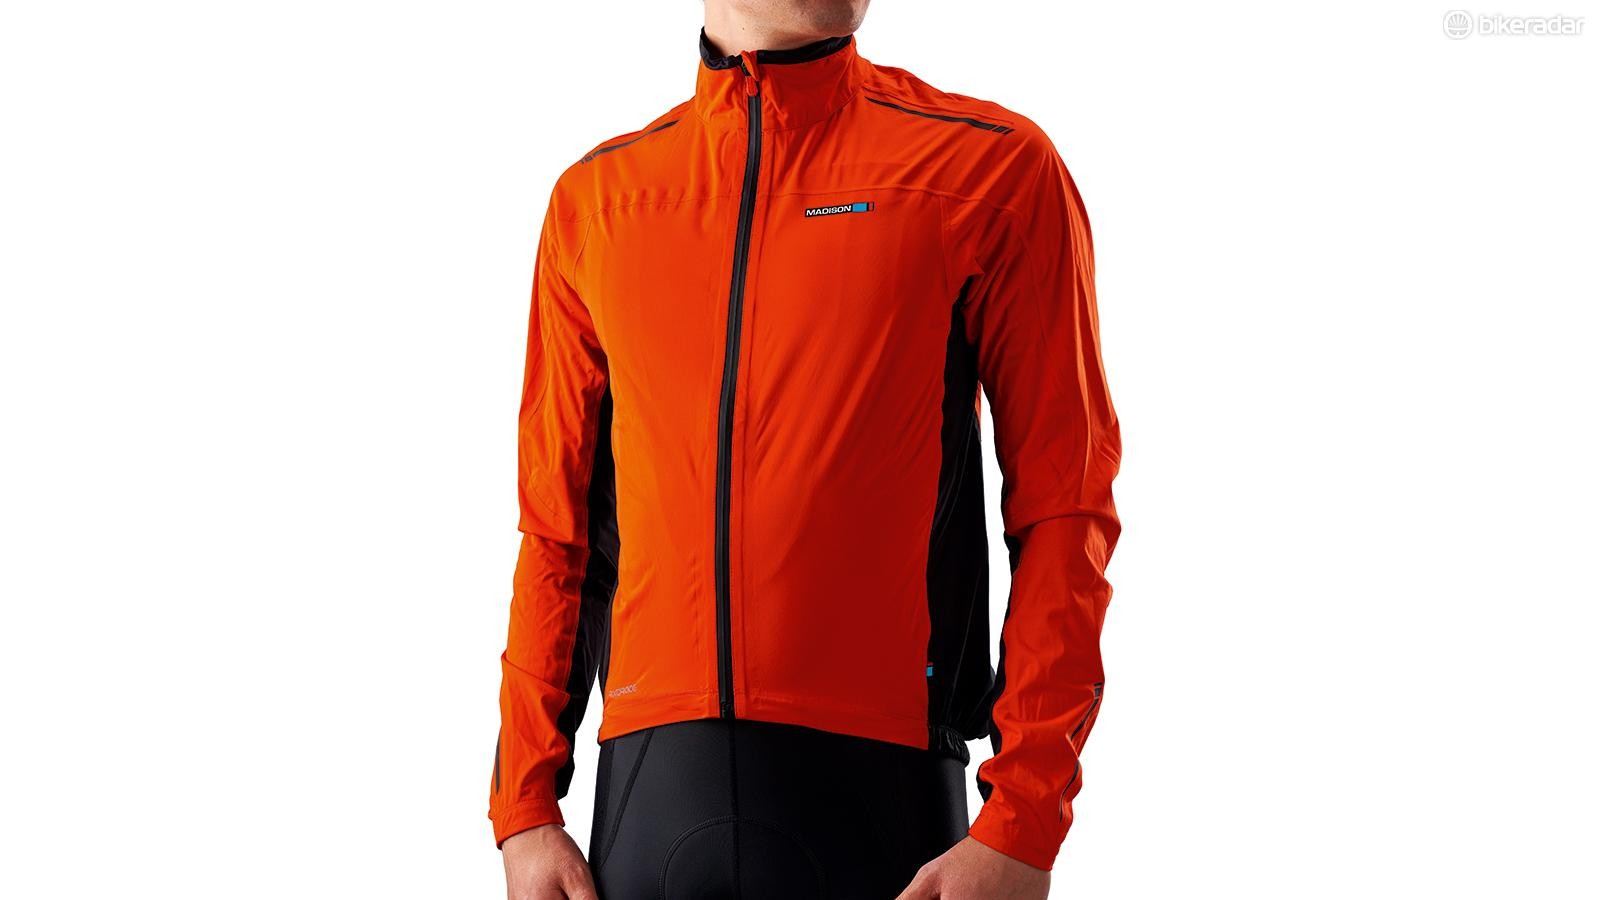 Madison's Road Race Premio jacket is great value for money